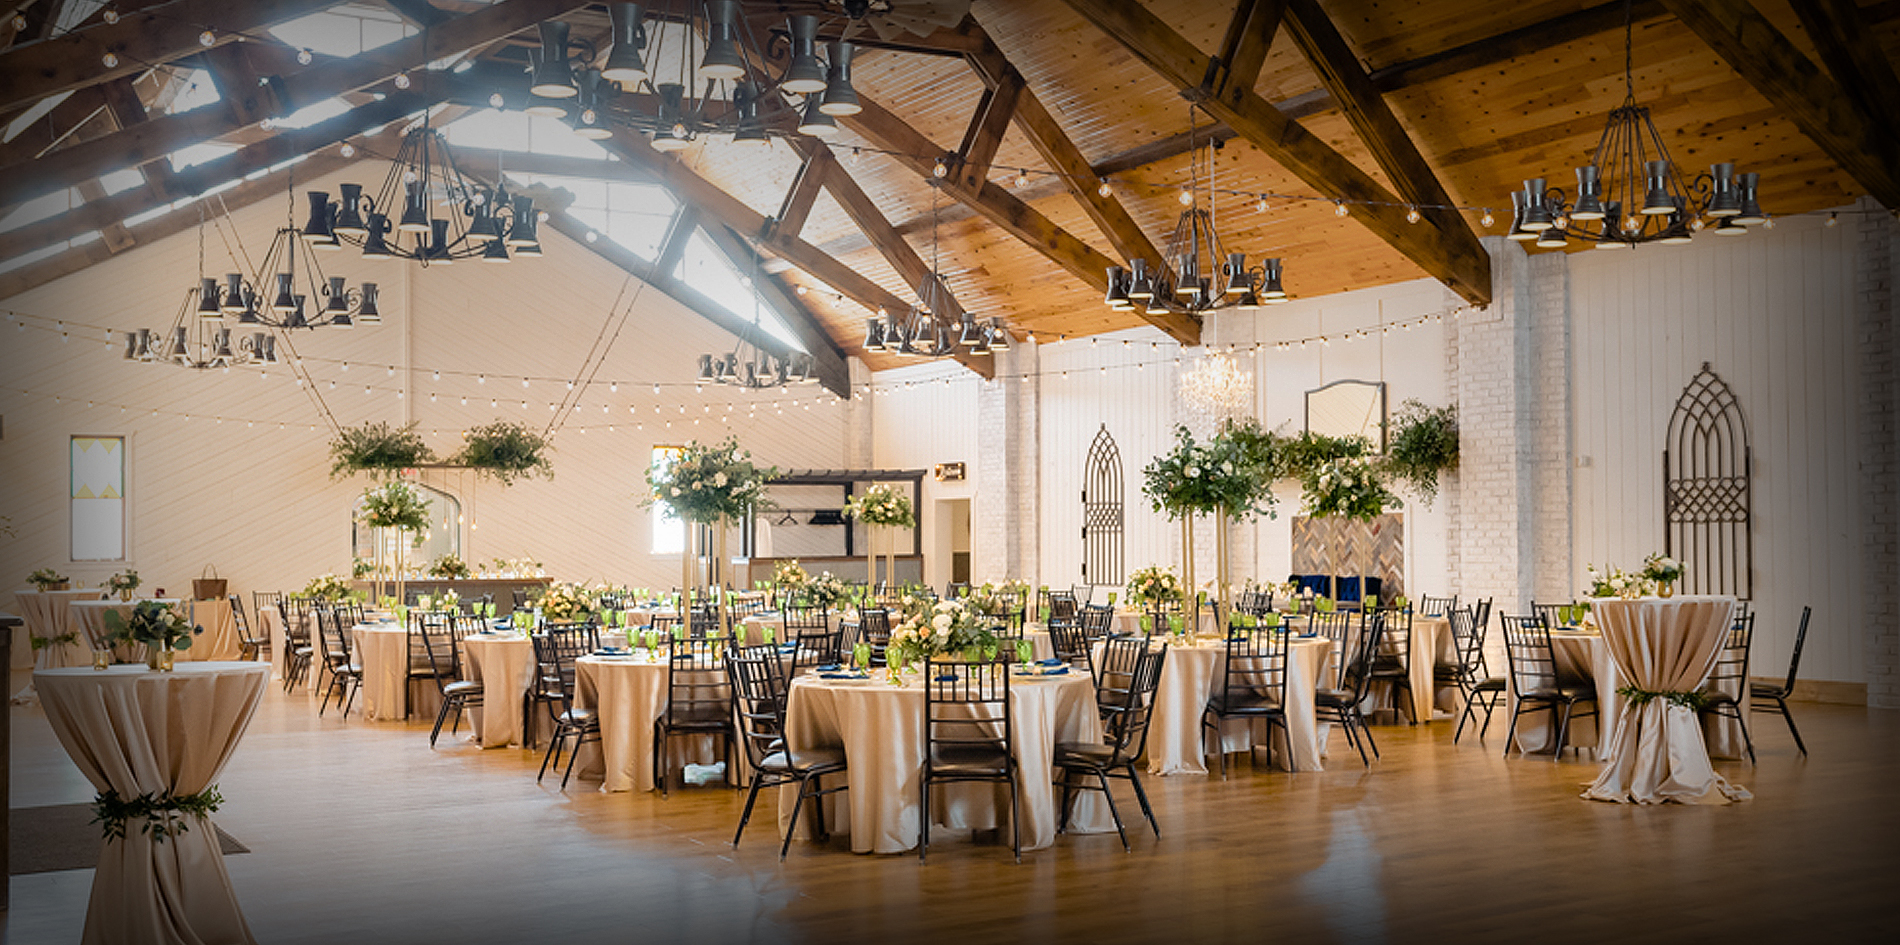 Wedding Reception Venue Minneapolis St Paul Hastings